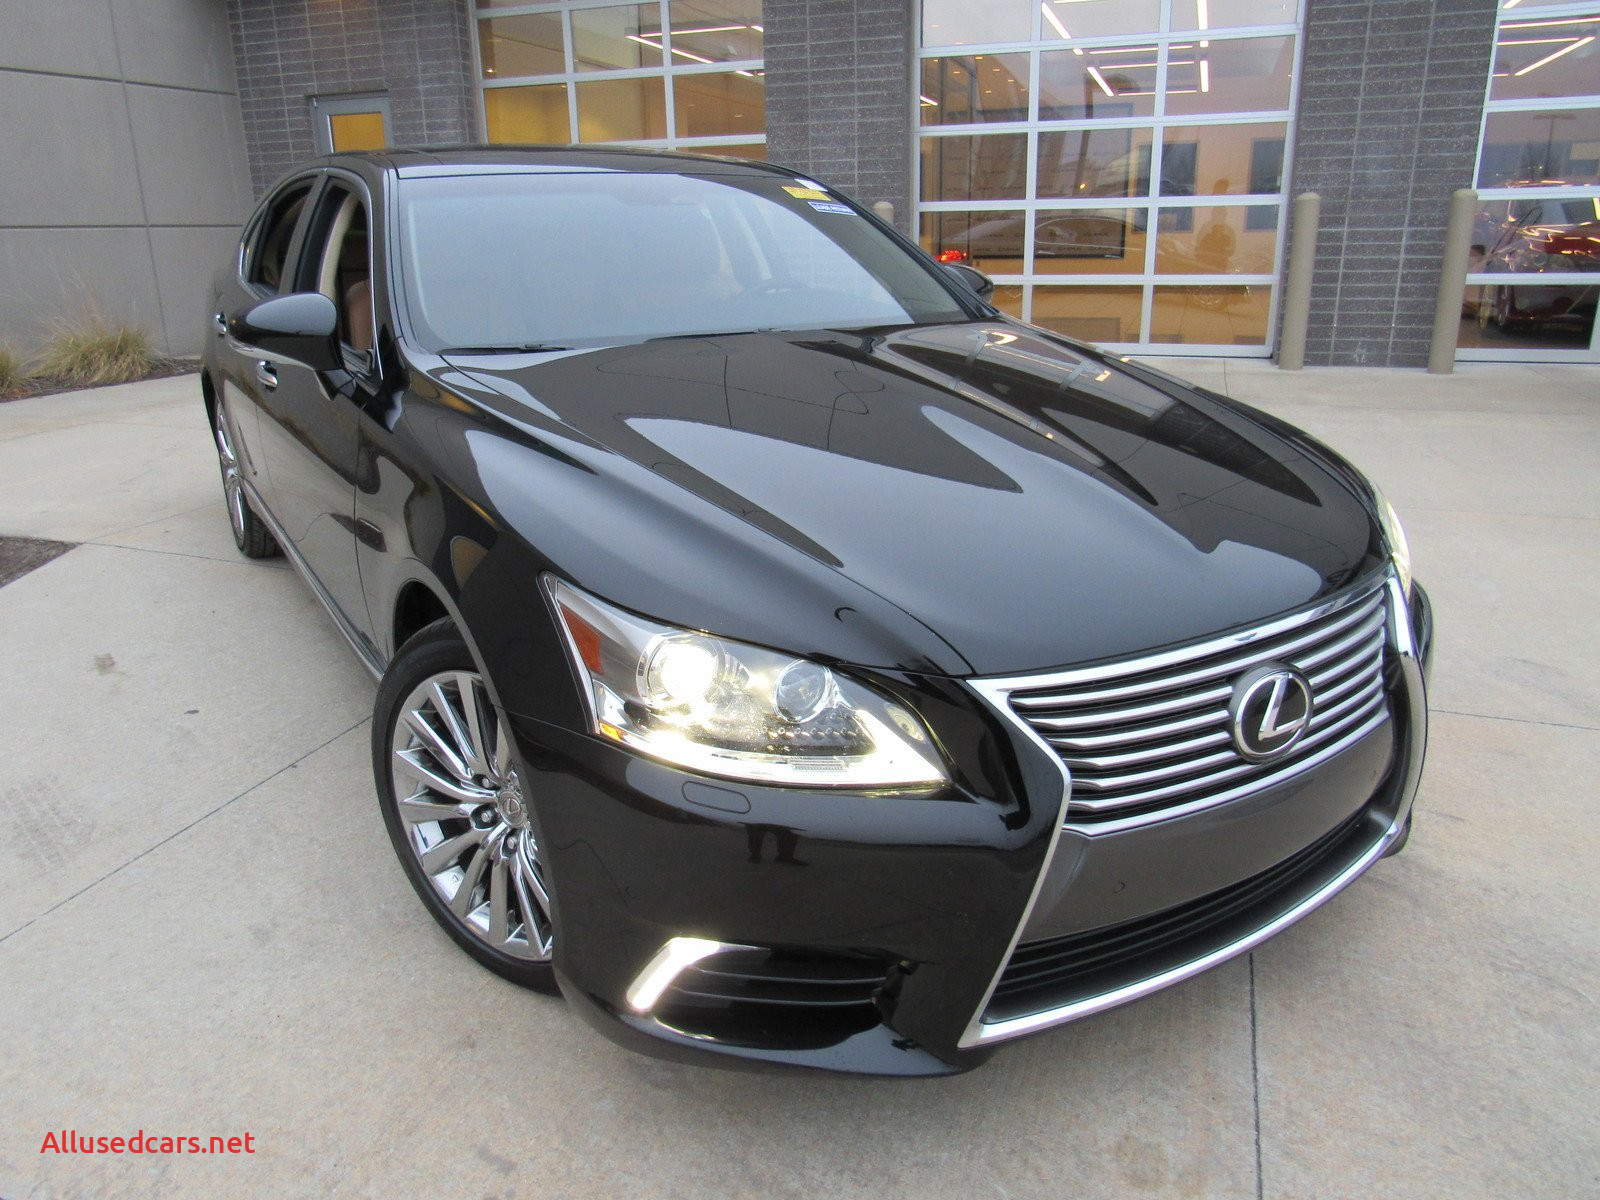 Lexus Ls 460 for Sale Awesome Pre Owned 2016 Lexus Ls 460 4dr Sdn Awd